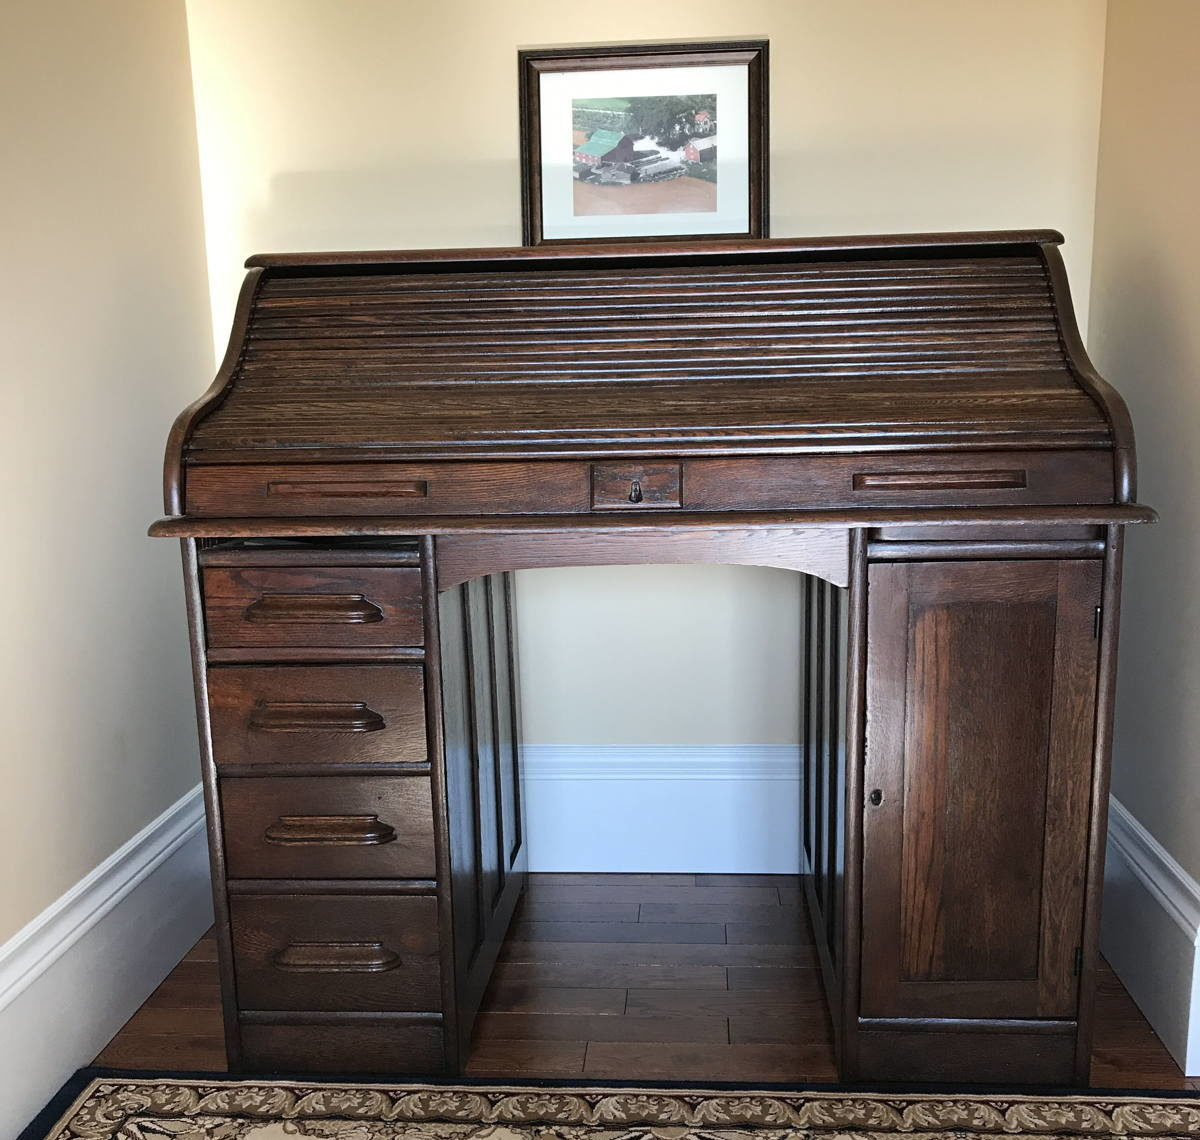 Furniture Refinishing for Family Heirlooms